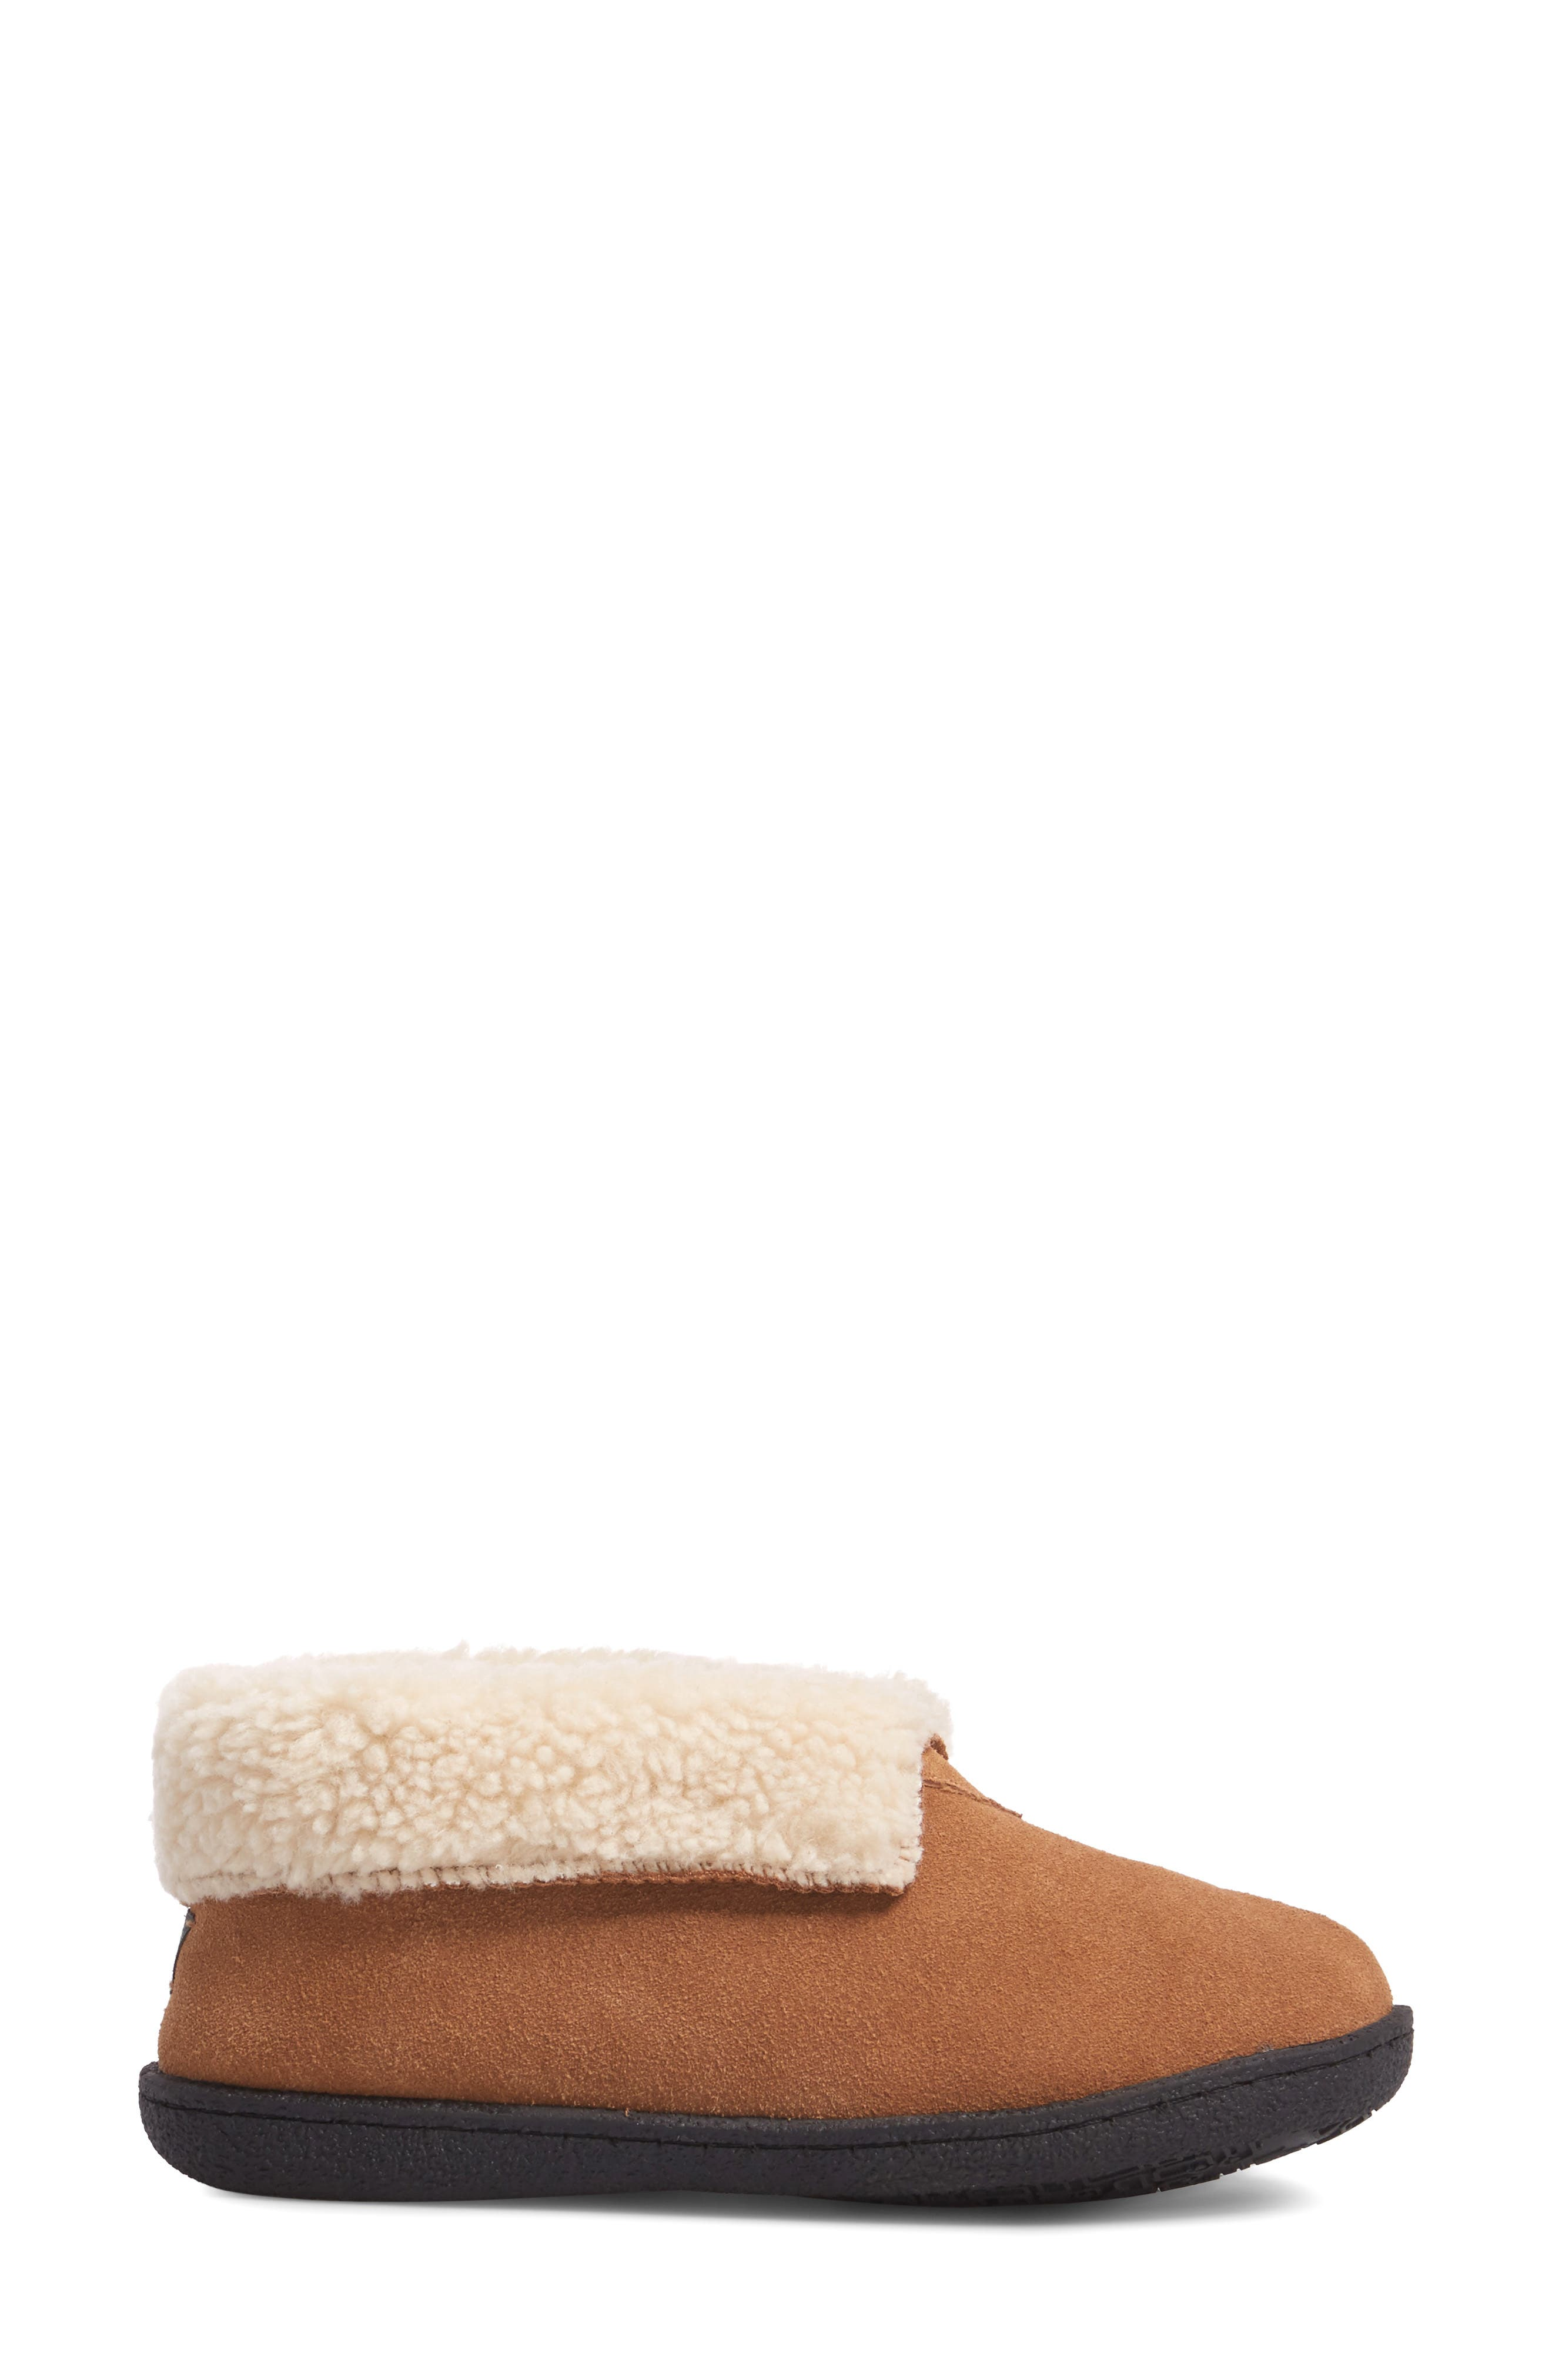 Lodge II Slipper,                             Alternate thumbnail 3, color,                             Chestnut